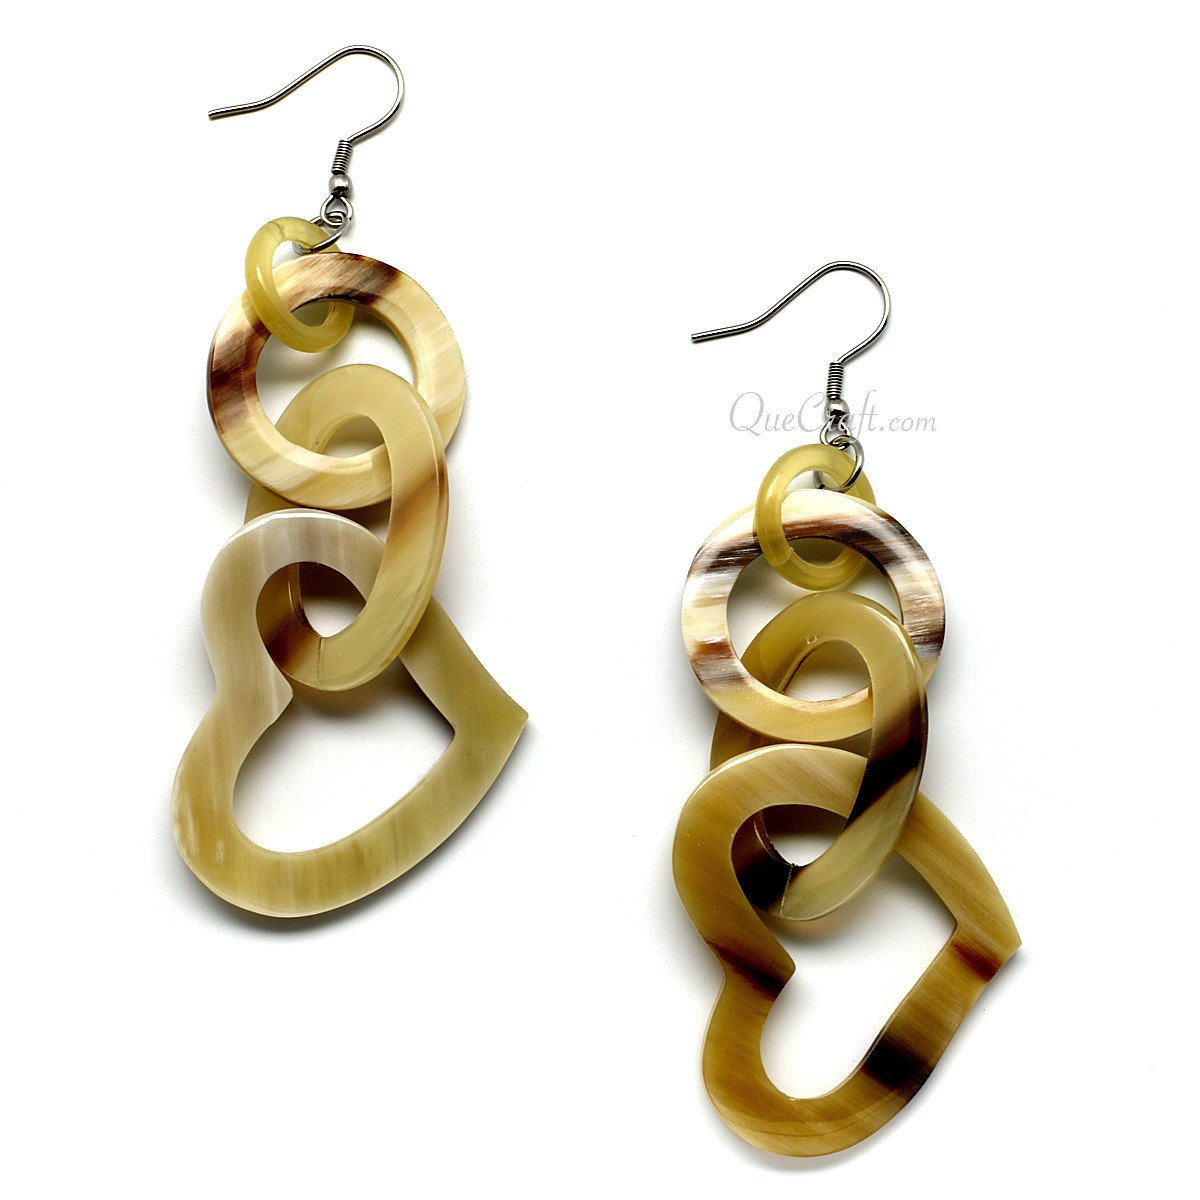 Horn Earrings #10003 - HORN.JEWELRY by QueCraft